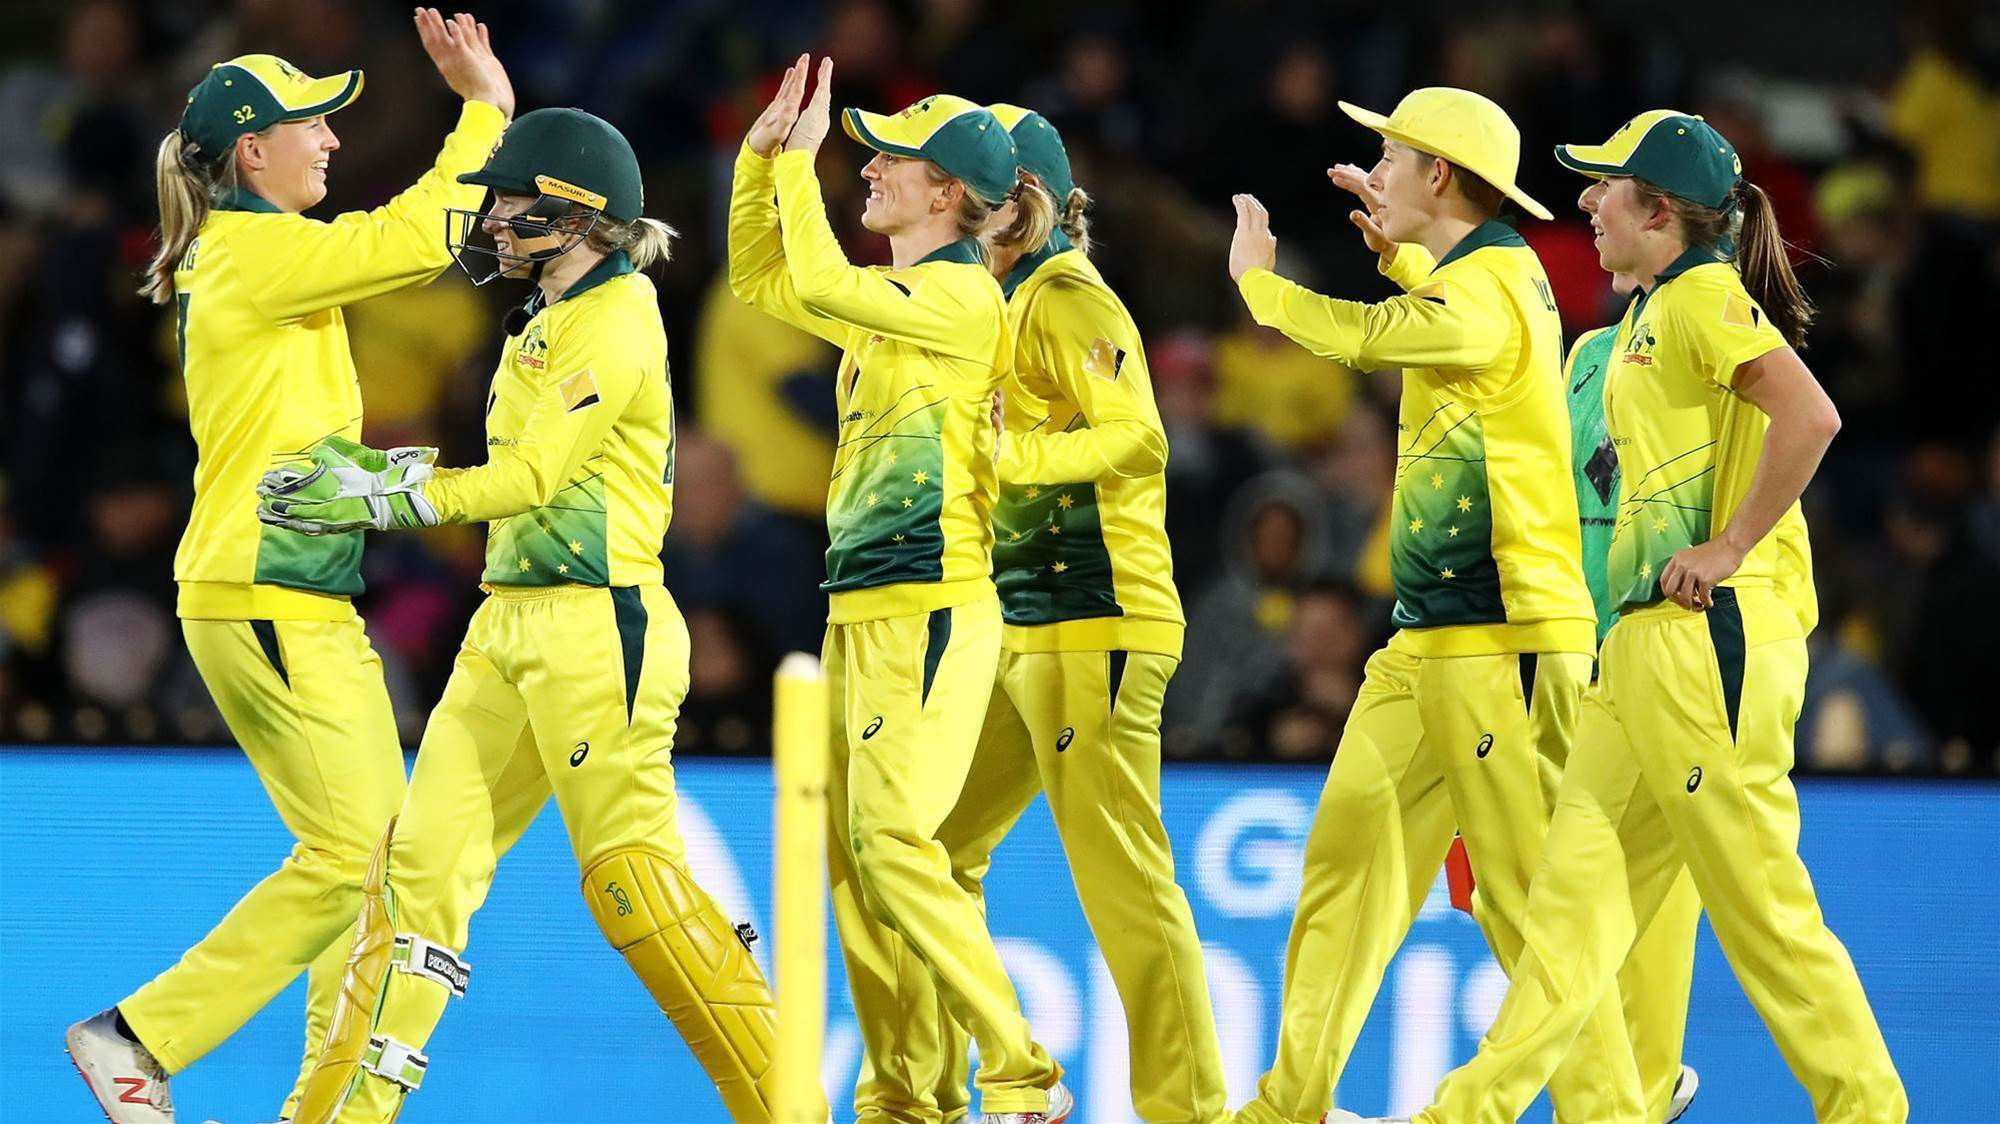 Australia recover from shaky start to cruise to victory